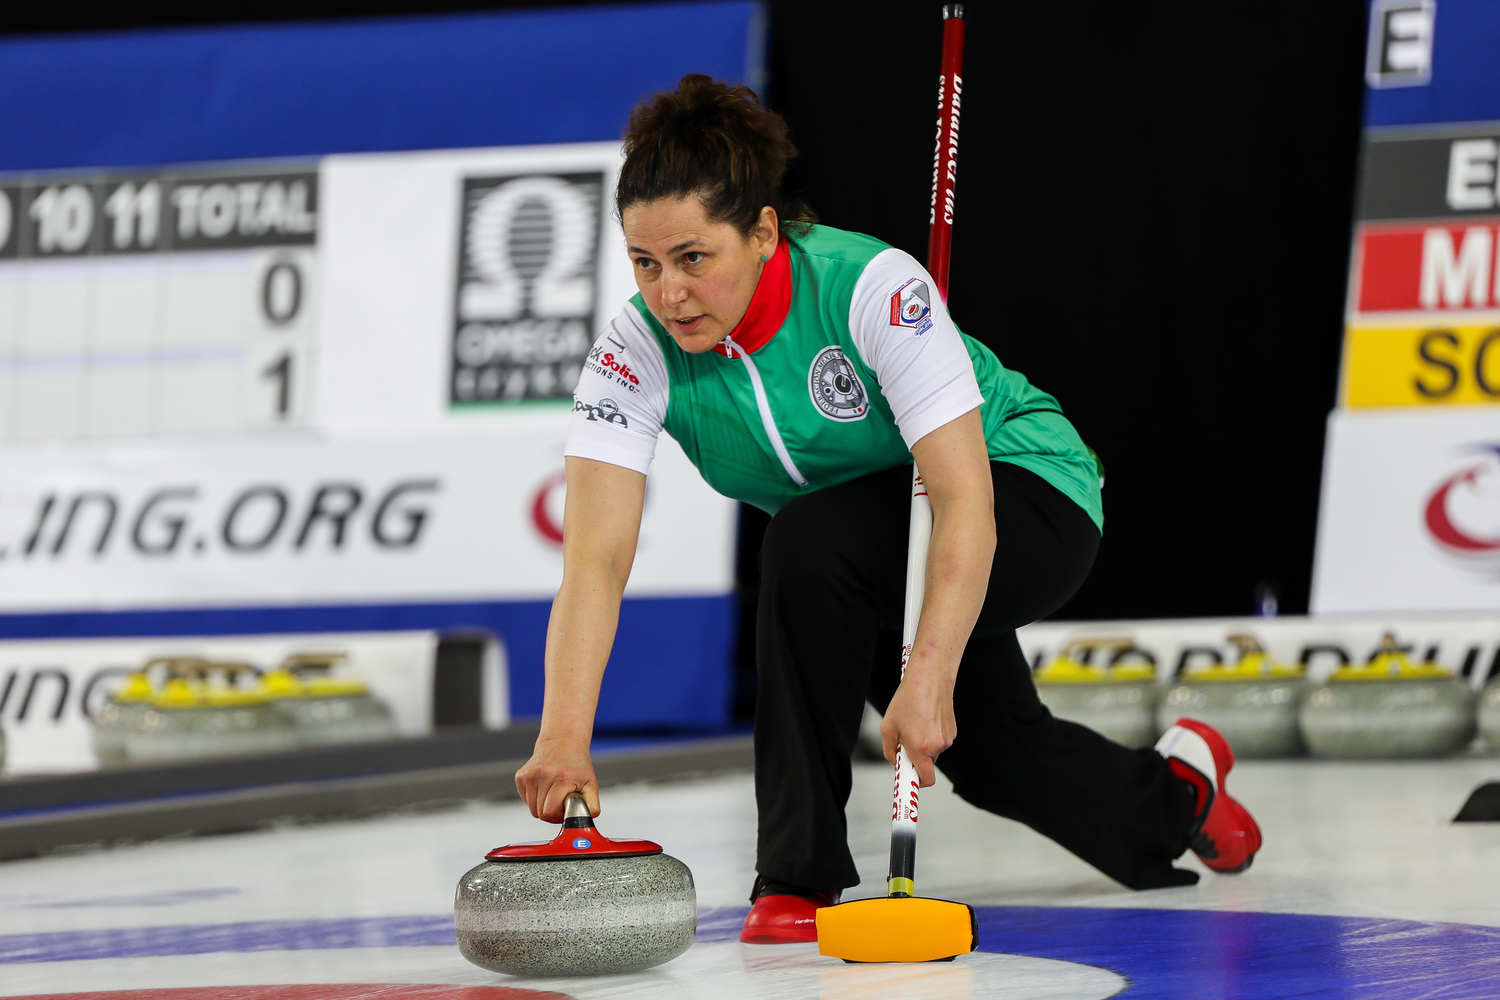 Mexico to make Americas Challenge debut - World Curling Federation